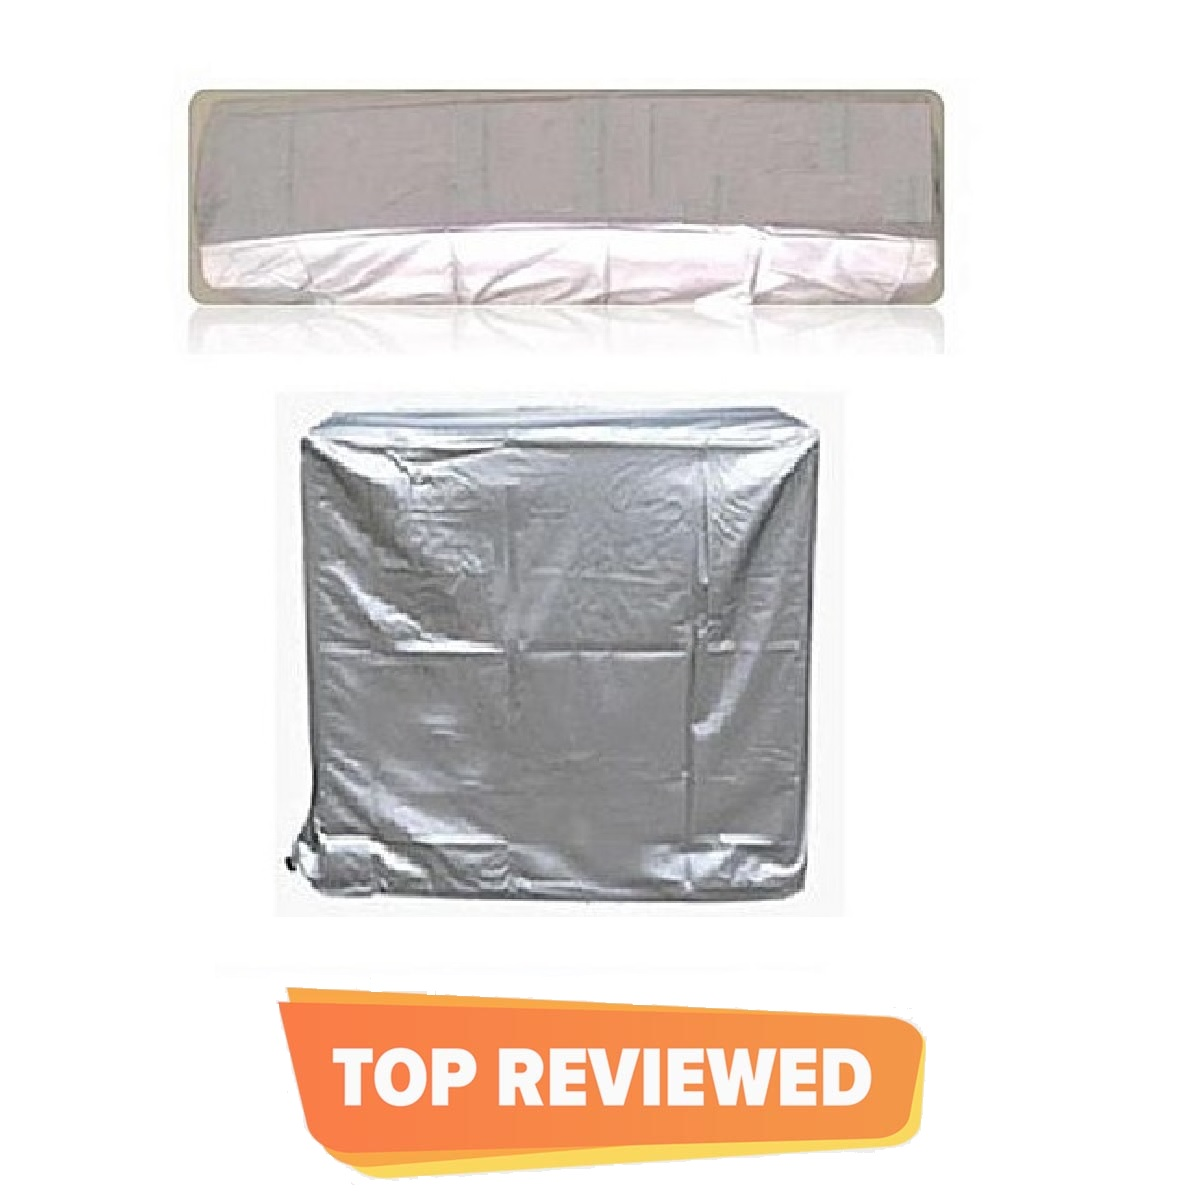 1 Ton Ac Dust Cover For Indoor & Outdoor Unit - Silver